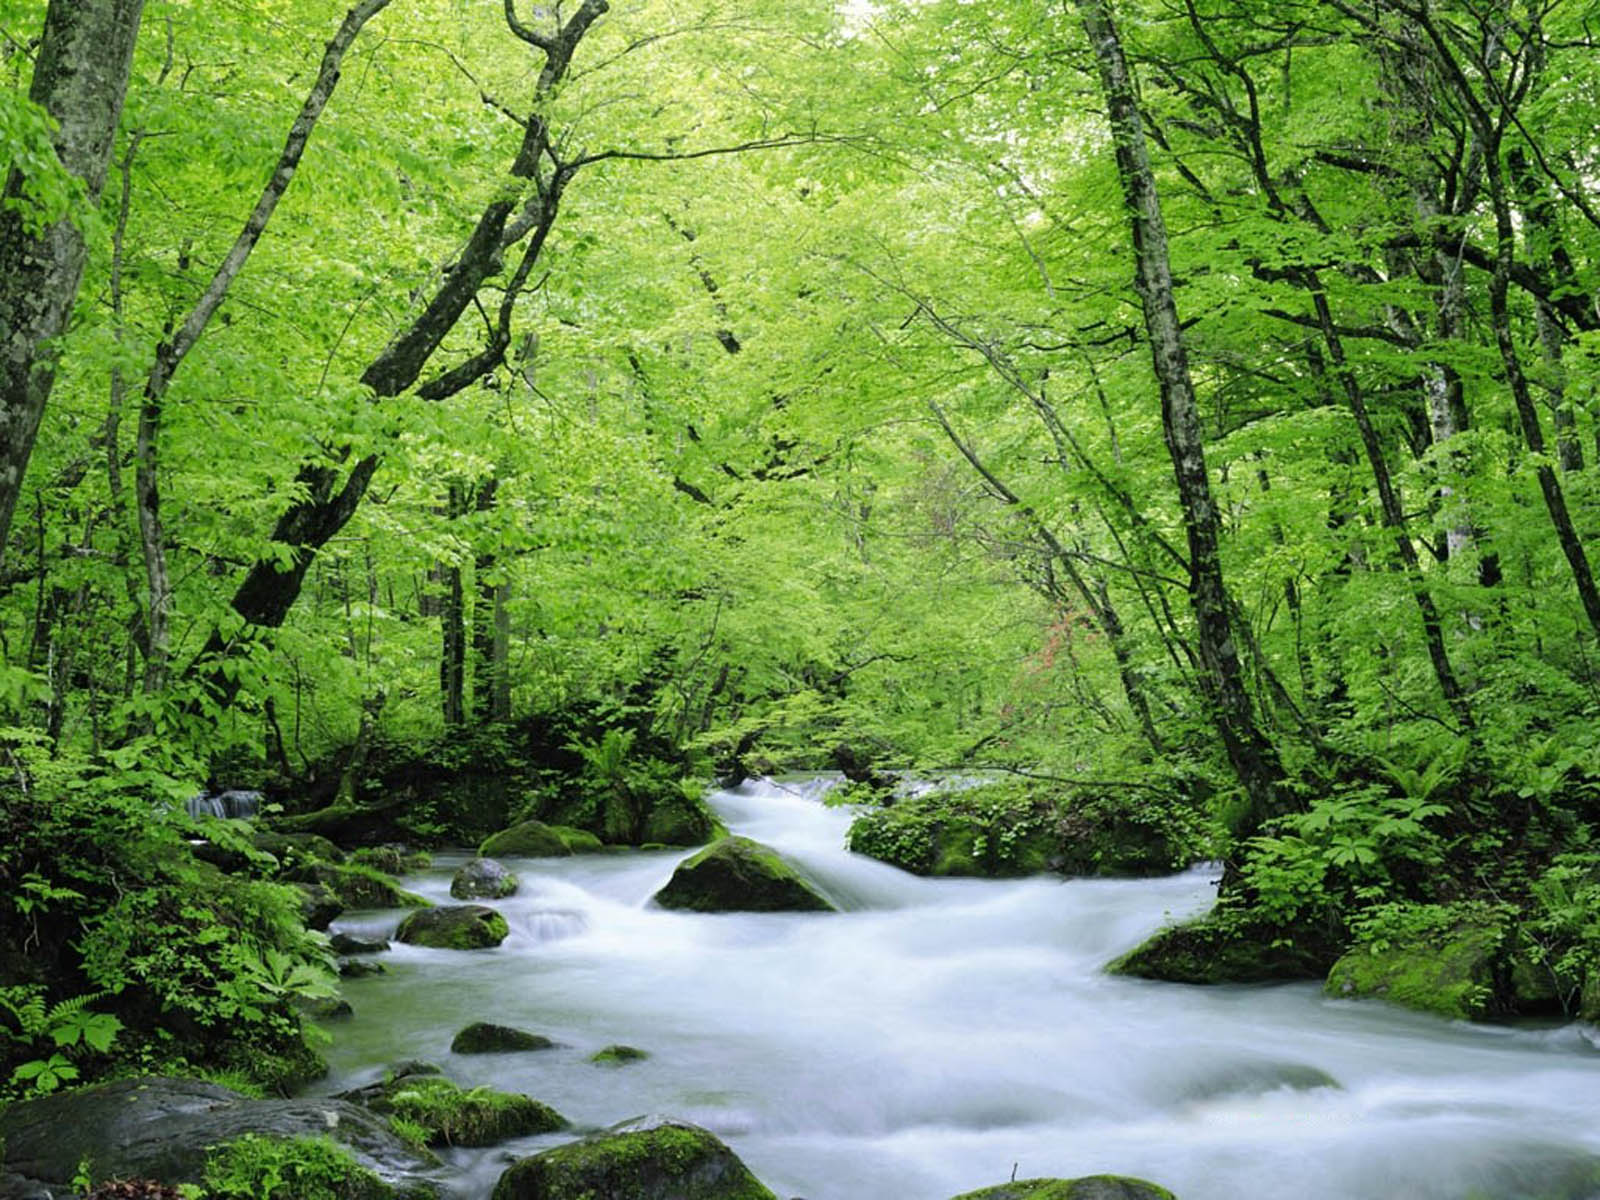 Green Nature Wallpapers, GreenNature Desktop Wallpapers, Green Nature